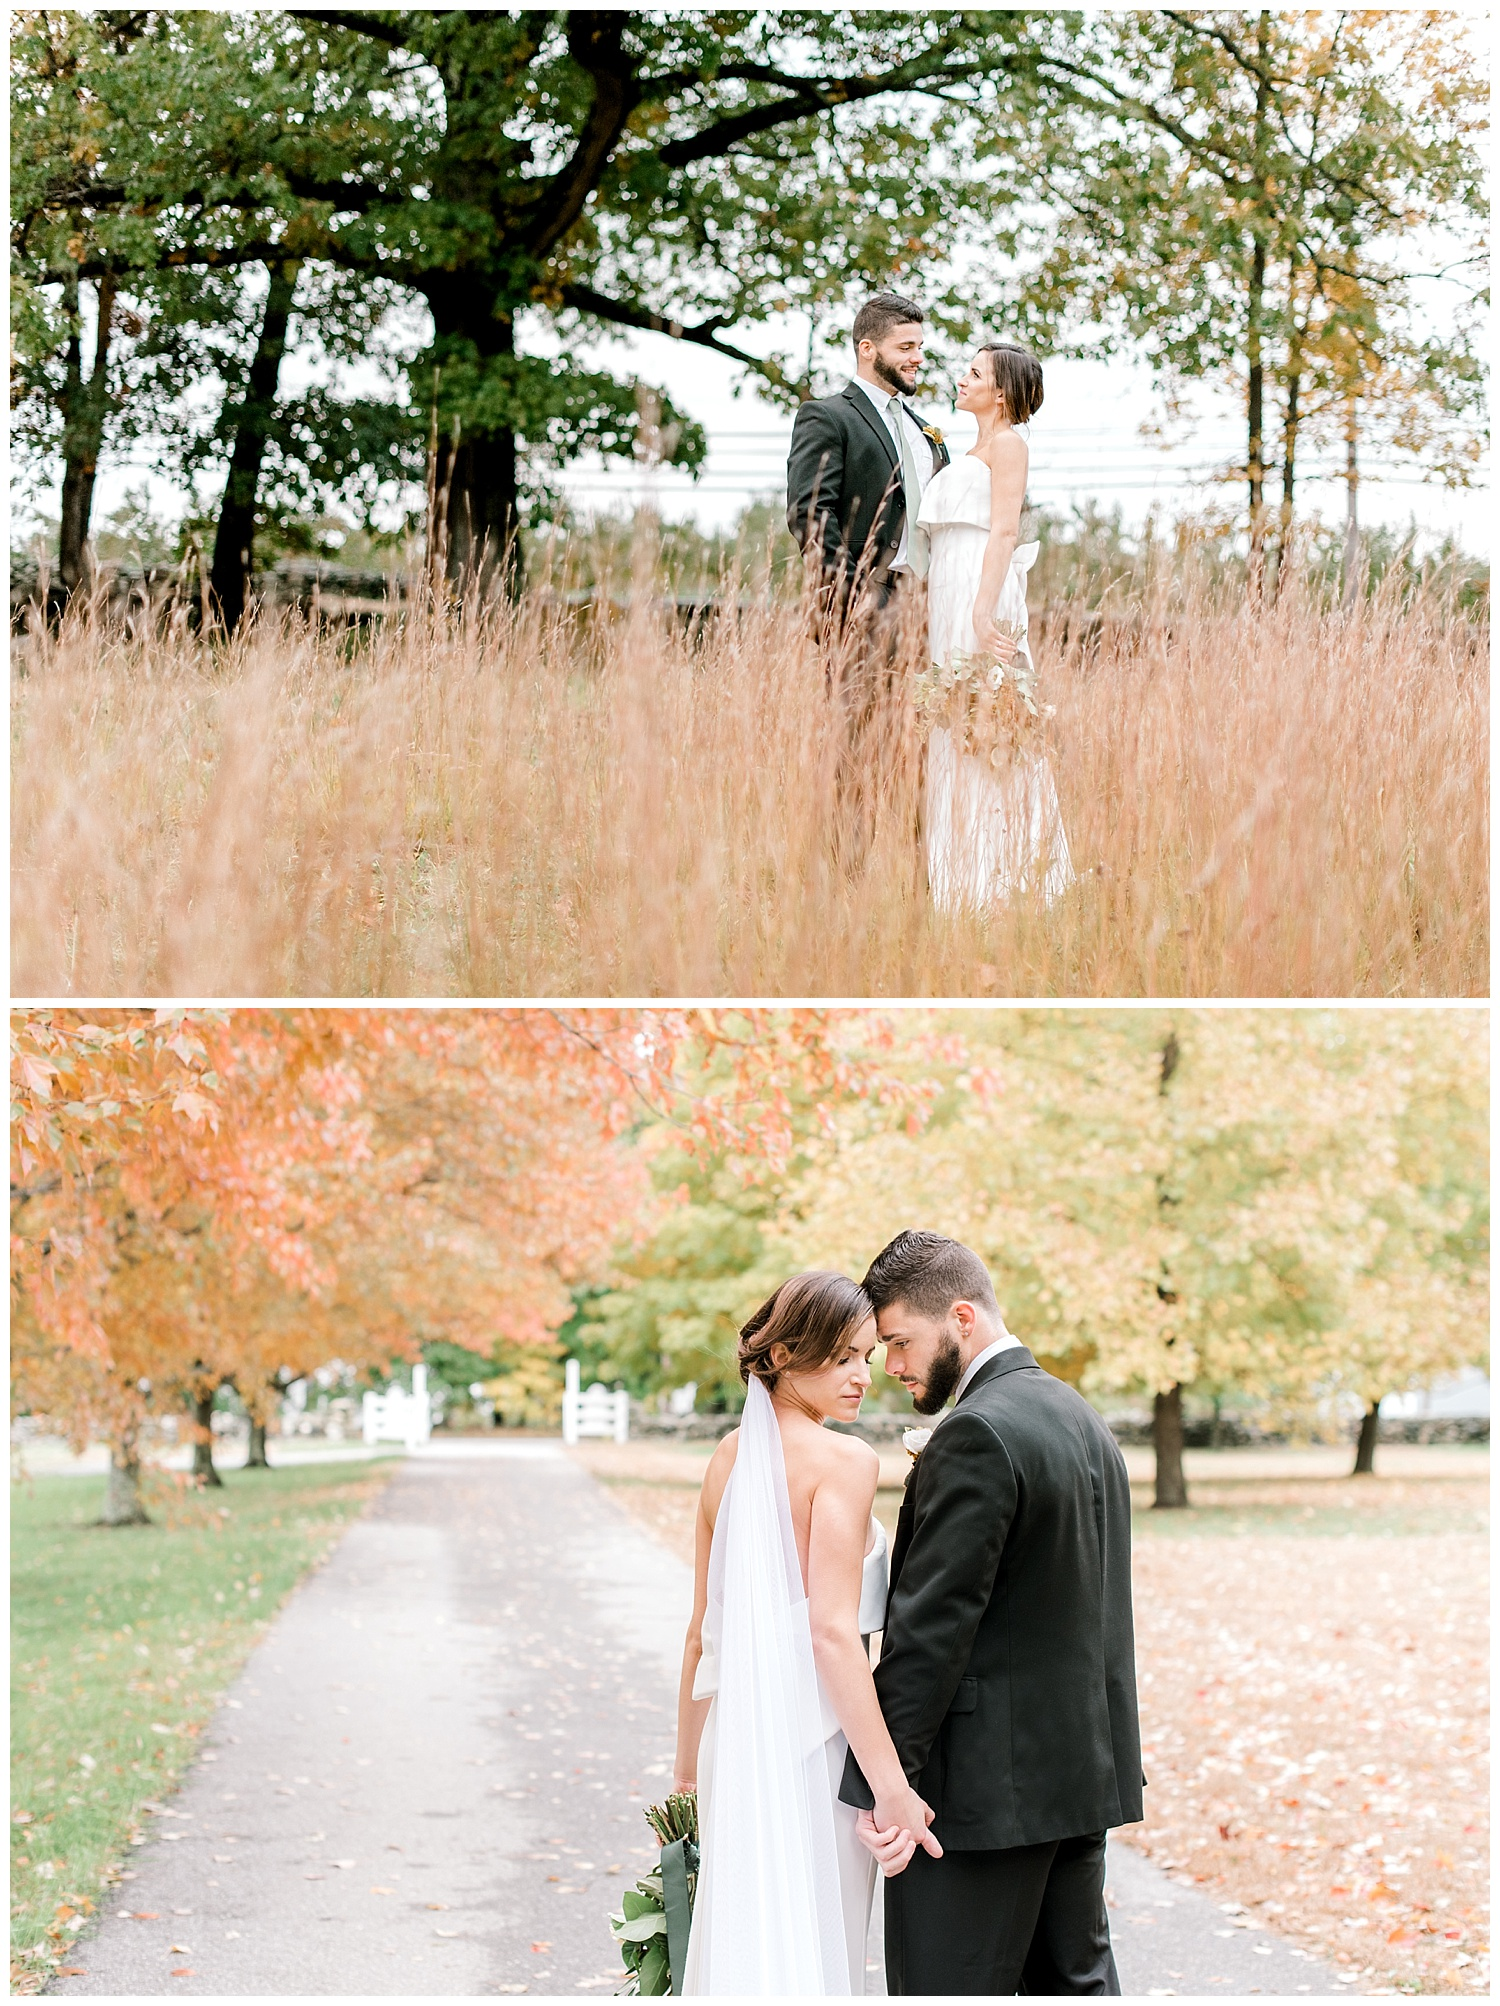 pompositticut-farm-fall-wedding-photography-hudson-massachusetts-photo-33.jpg